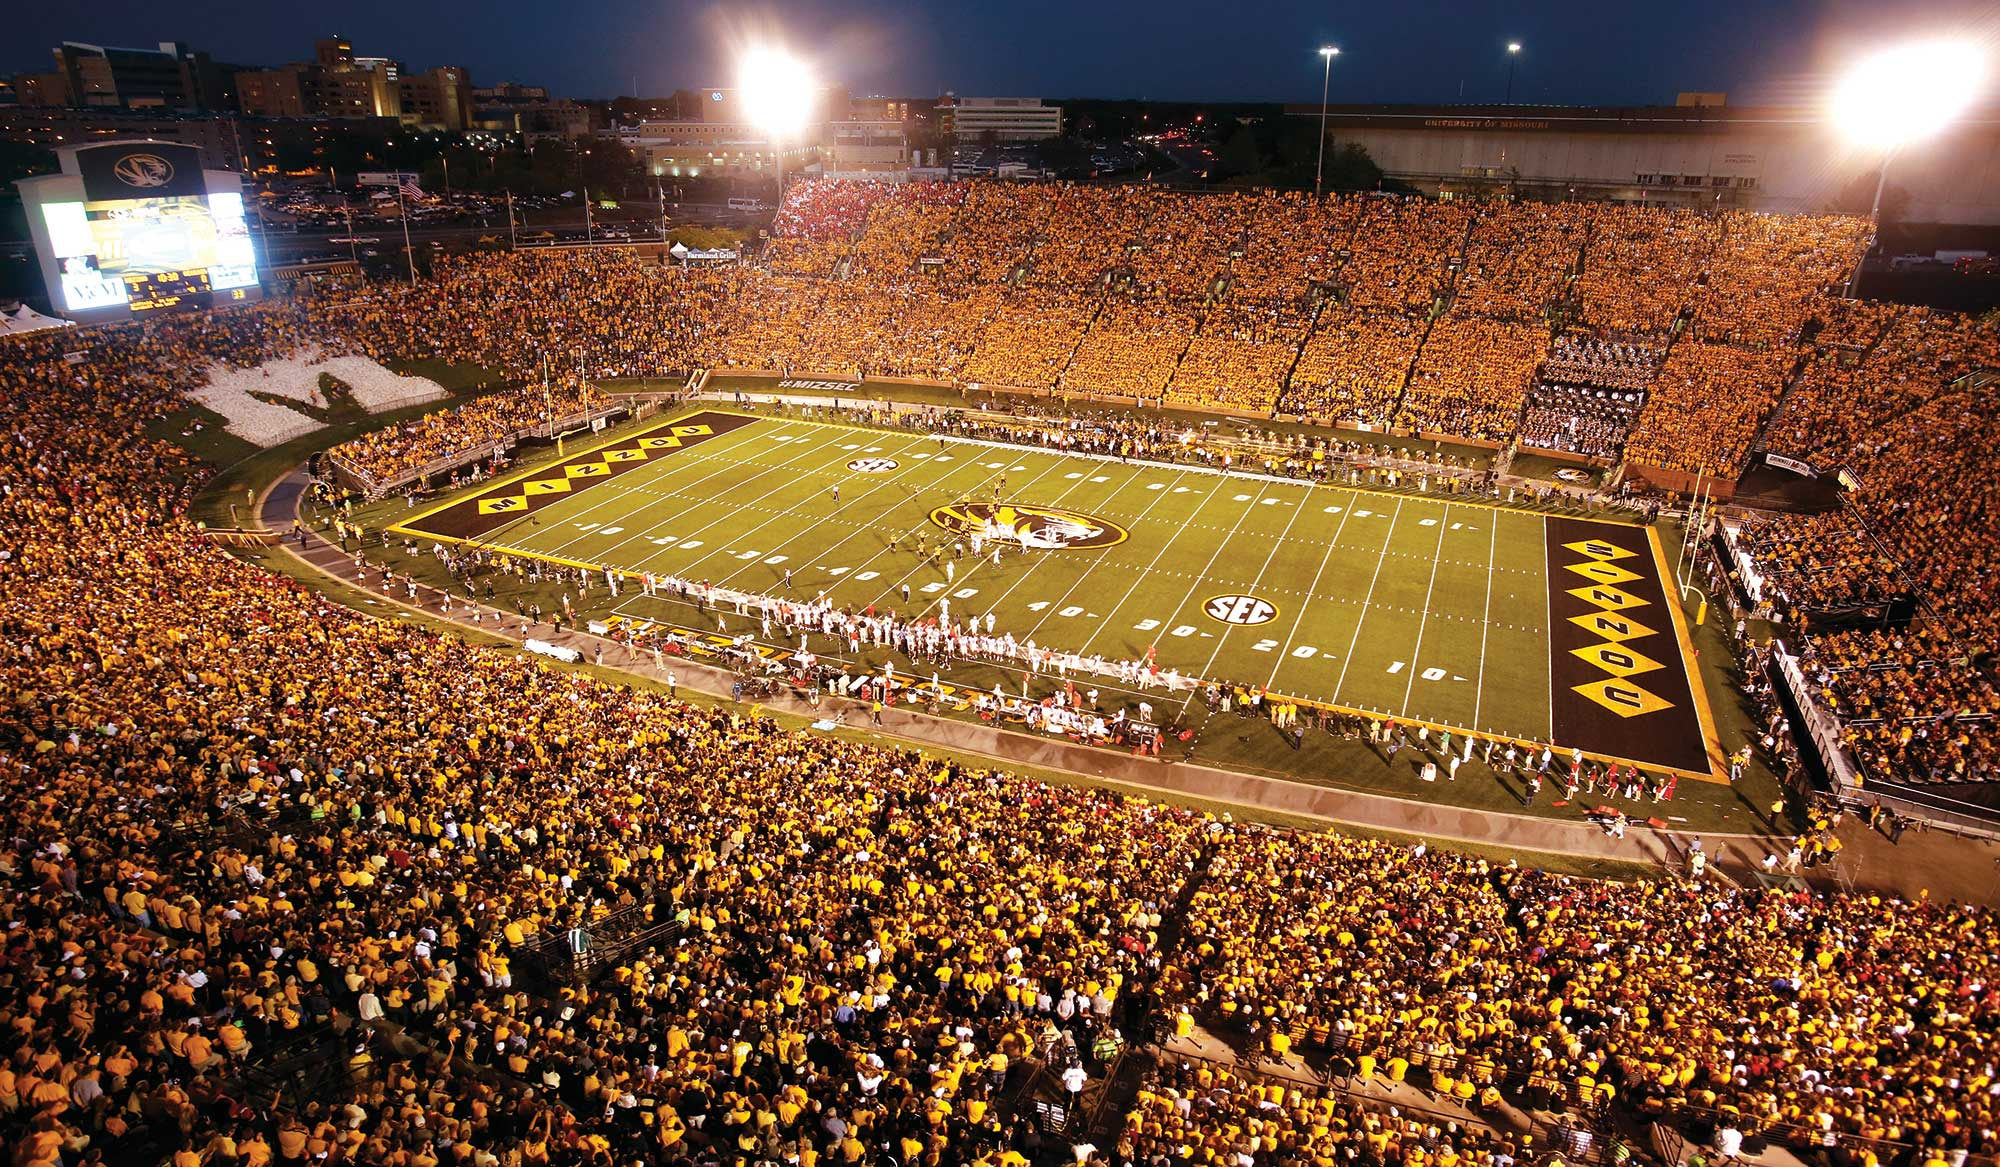 Memorial Stadium filled with black and gold fans